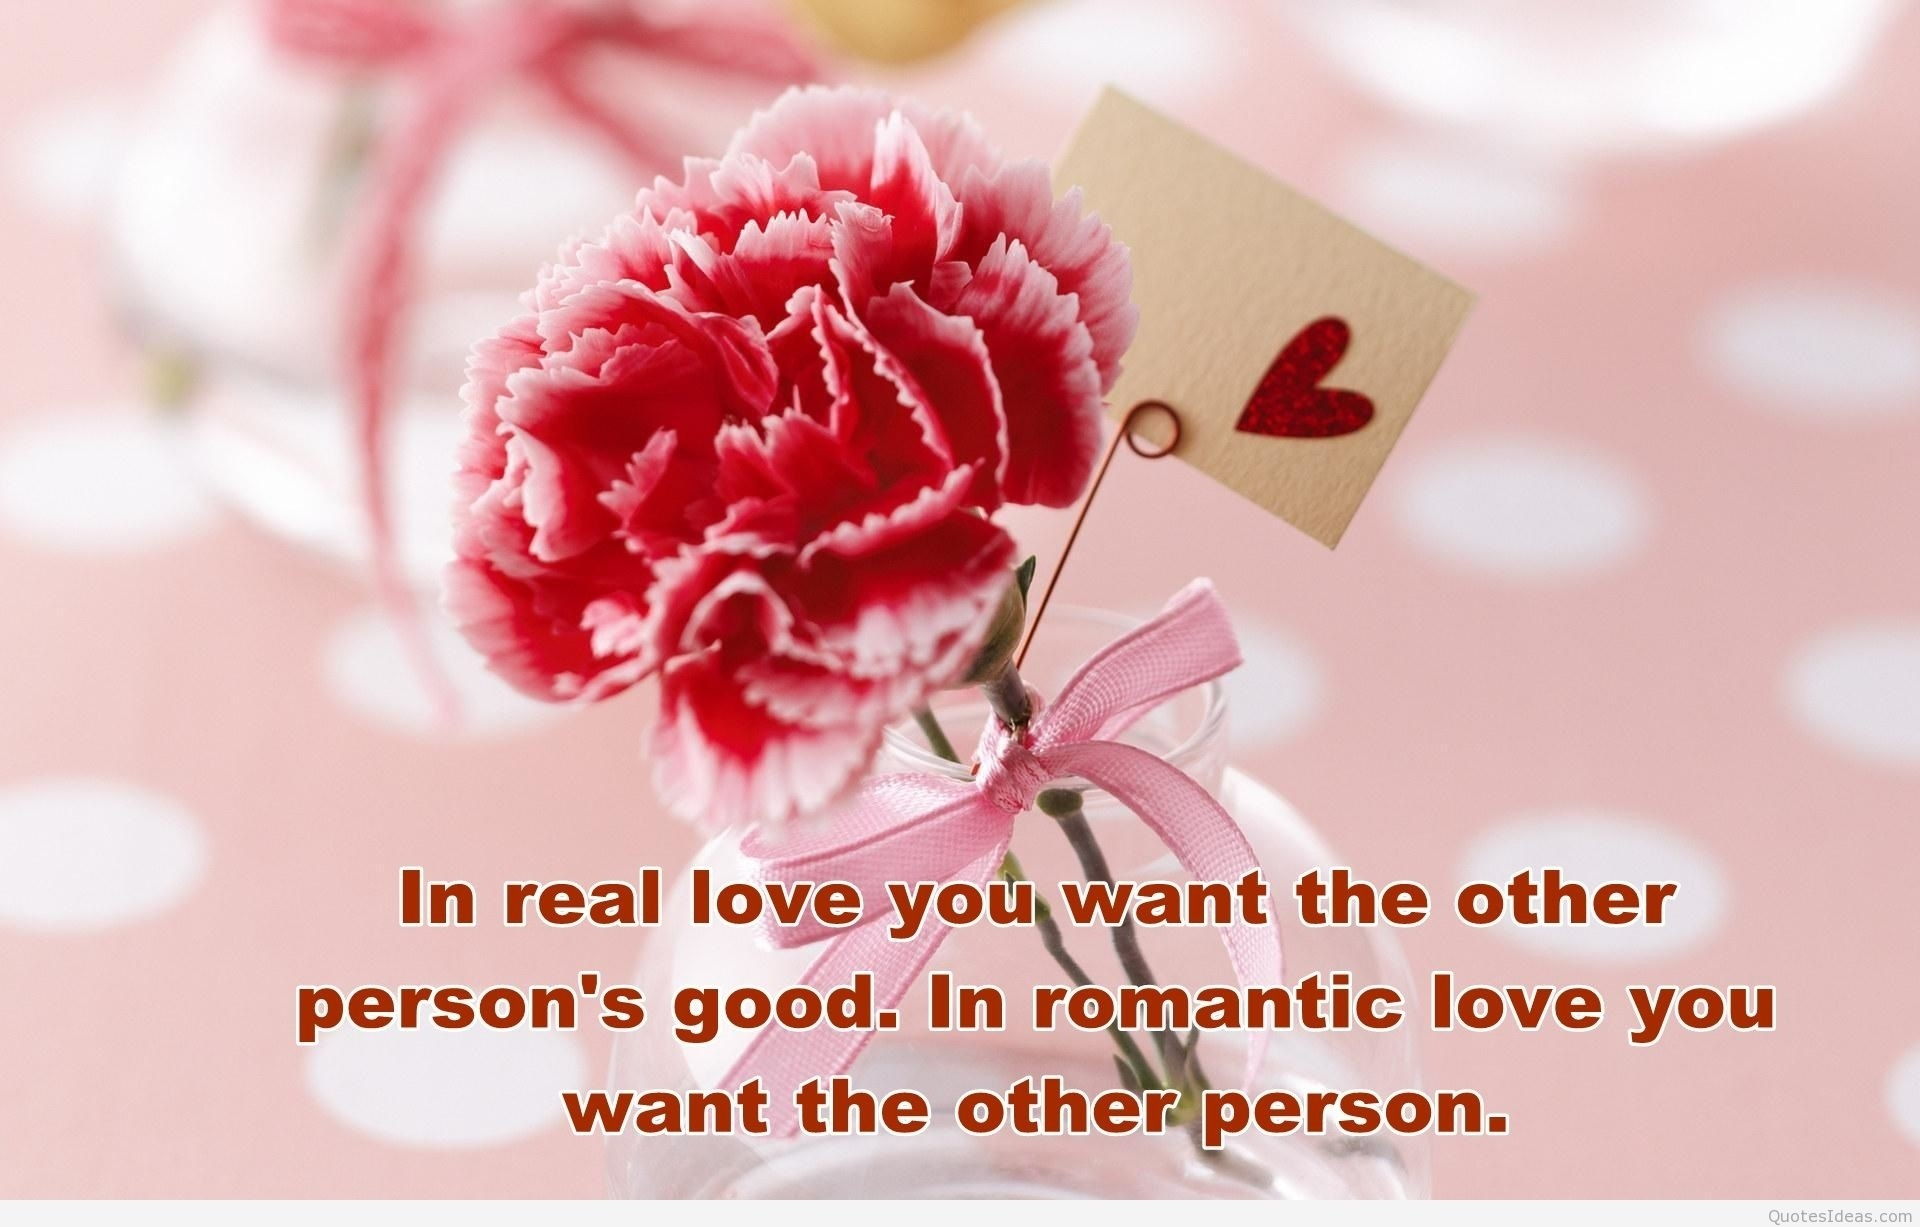 Romantic Wallpapers Of Couples With Quotes In Hindi Love Poems Wallpaper 183 ① Wallpapertag